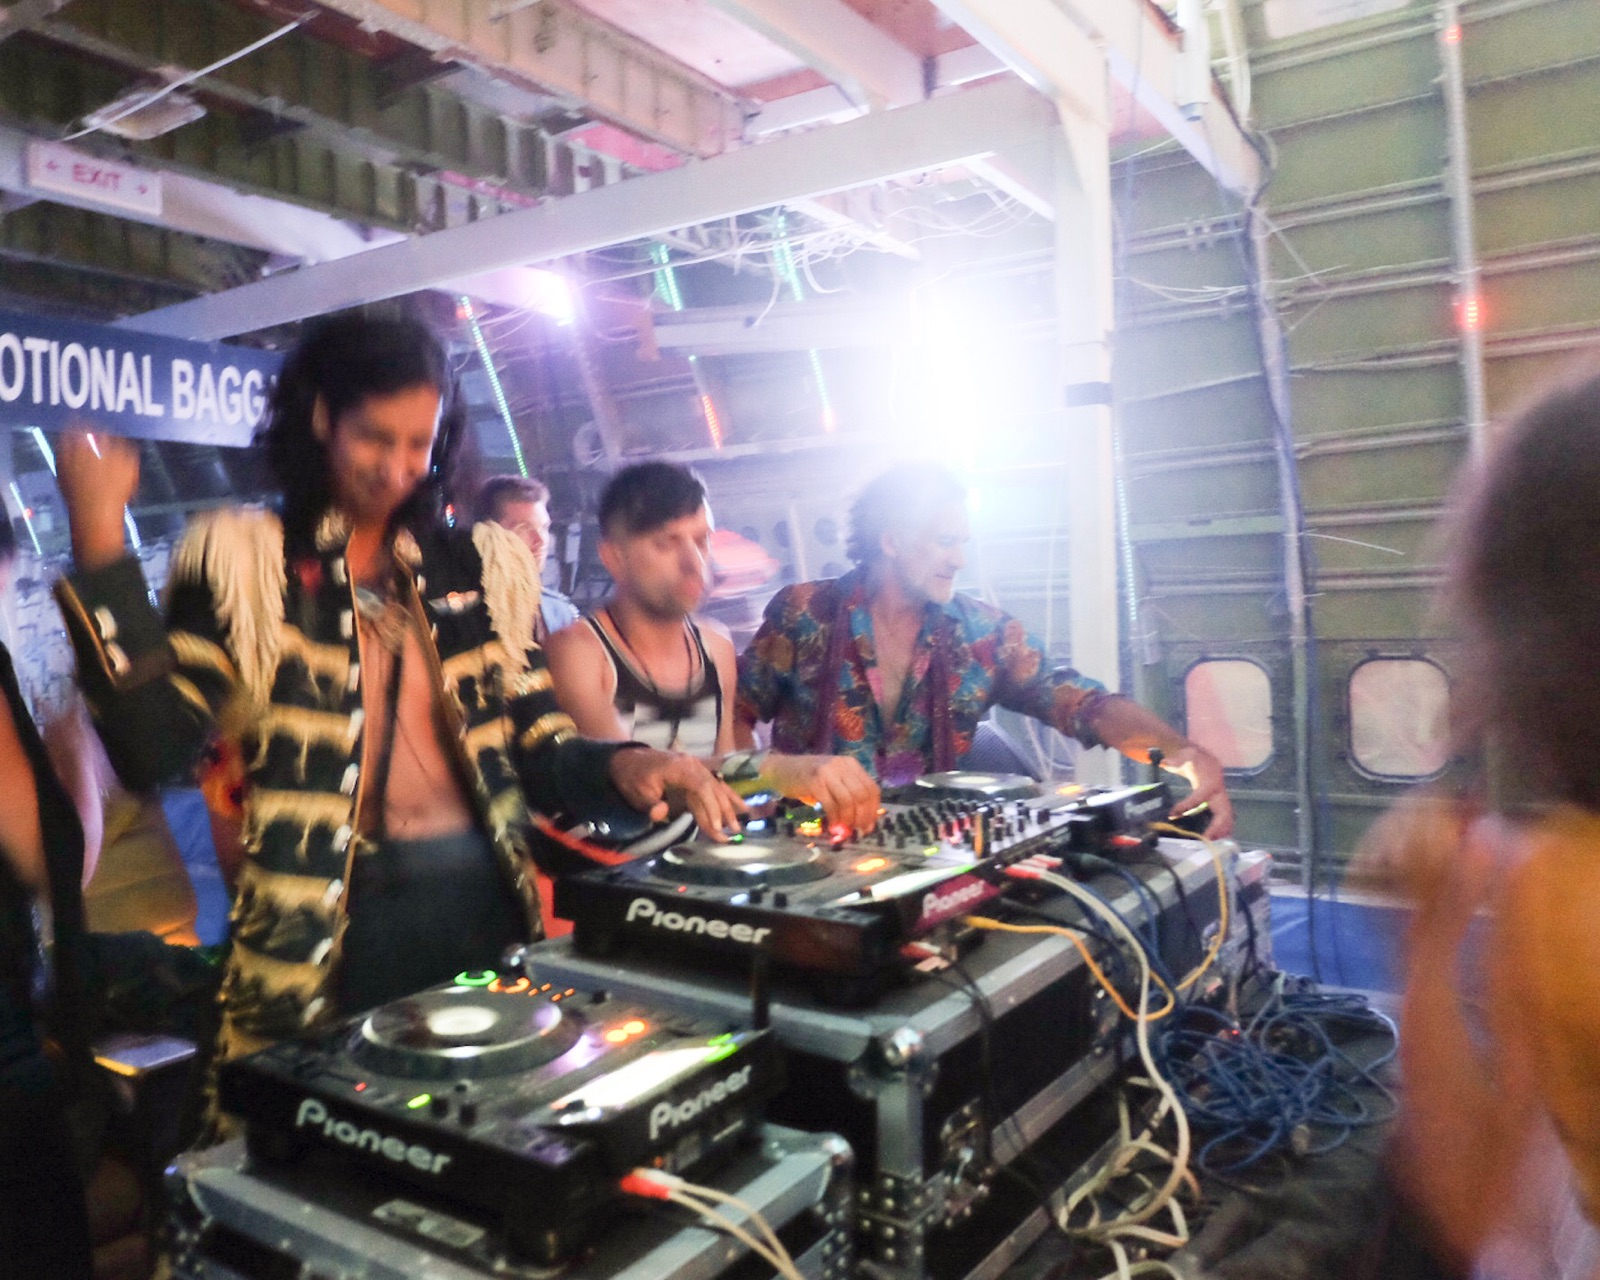 Playing a back-to-back set at Burning Man inside the 747 plane with Lee Reynolds, Nikita, MightyKat and Bilaliwood before the Martinez Brothers.